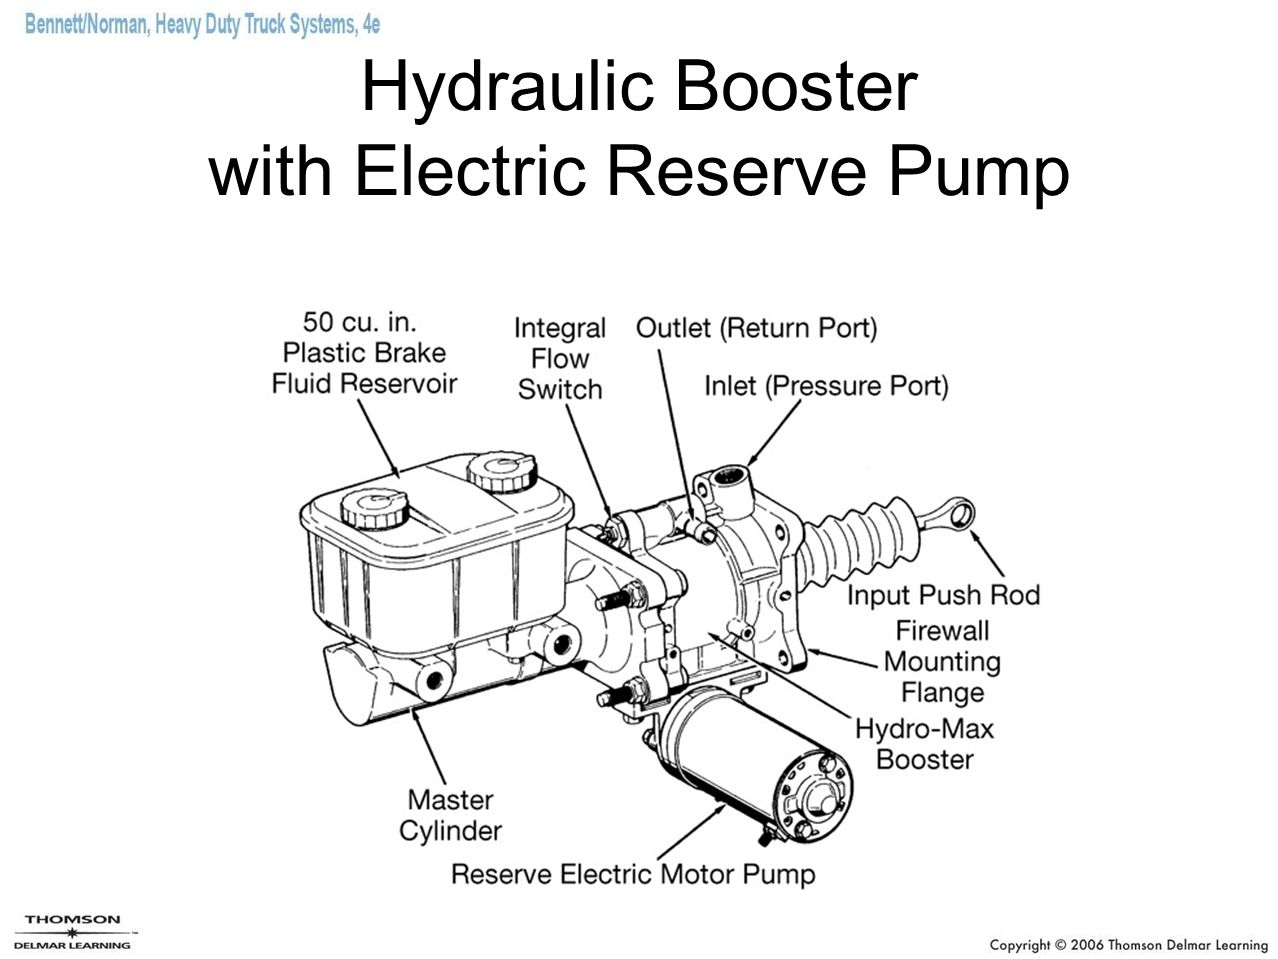 Hydraulic Brakes And Air Over Brake Systems Ppt Video System Diagram Serial Numbers Booster Circuit 14